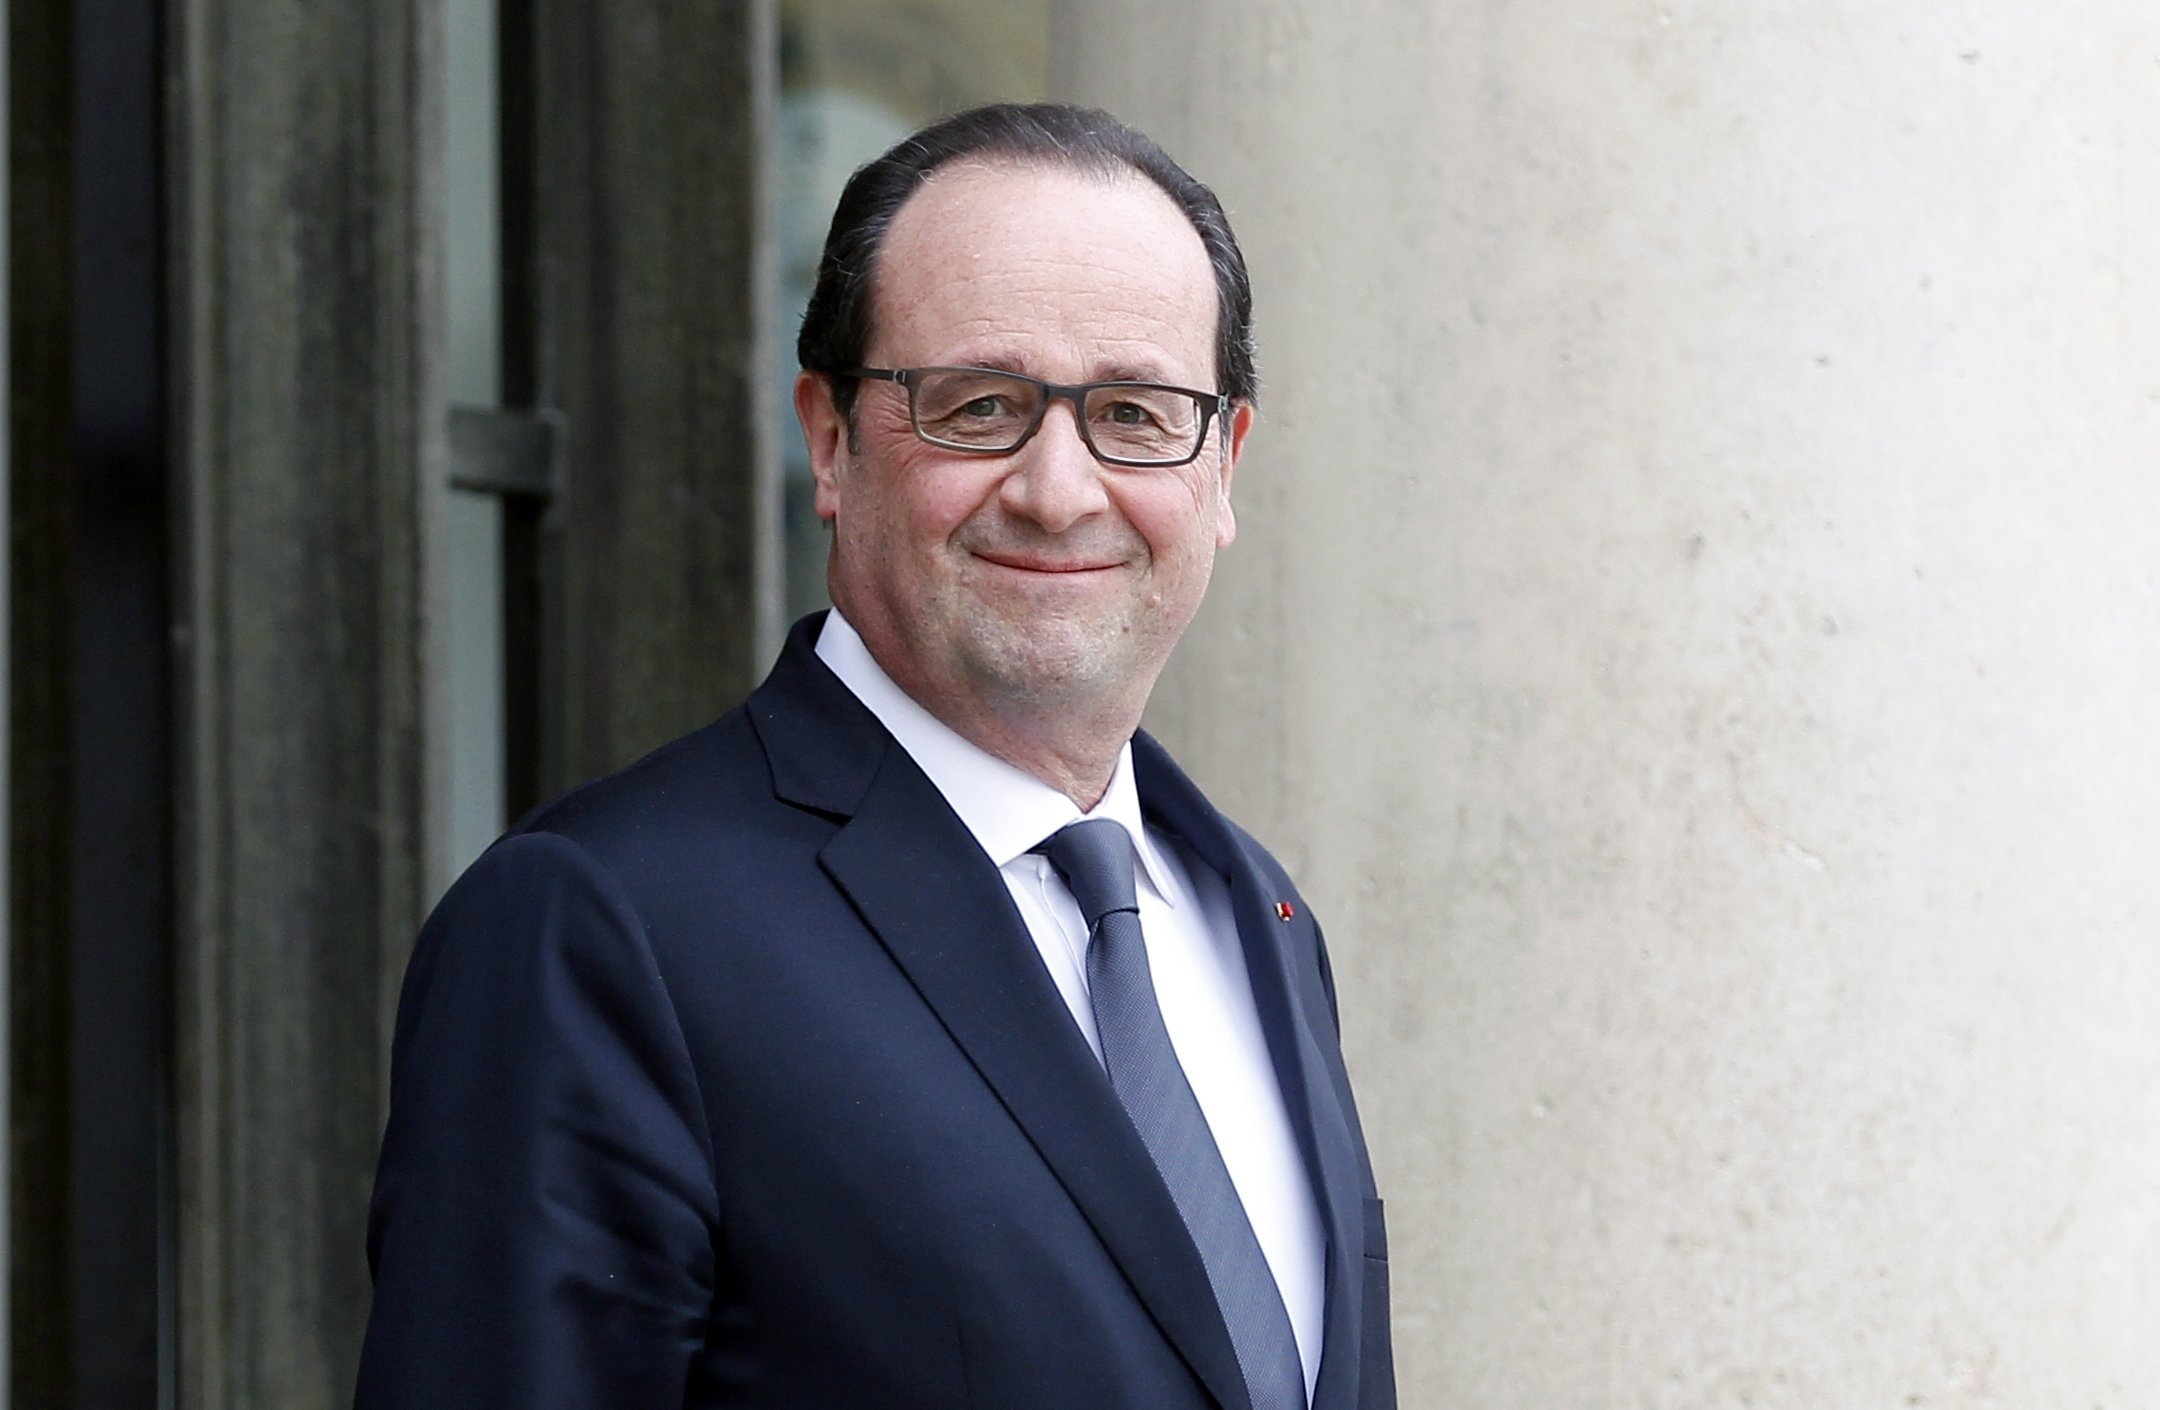 Former French President Francois Hollande waits prior a meeting with Francophonie General-Secretary Michaelle at the Elysee Palace in Paris, France, Feb. 18, 2015.  (Getty Images Photo)